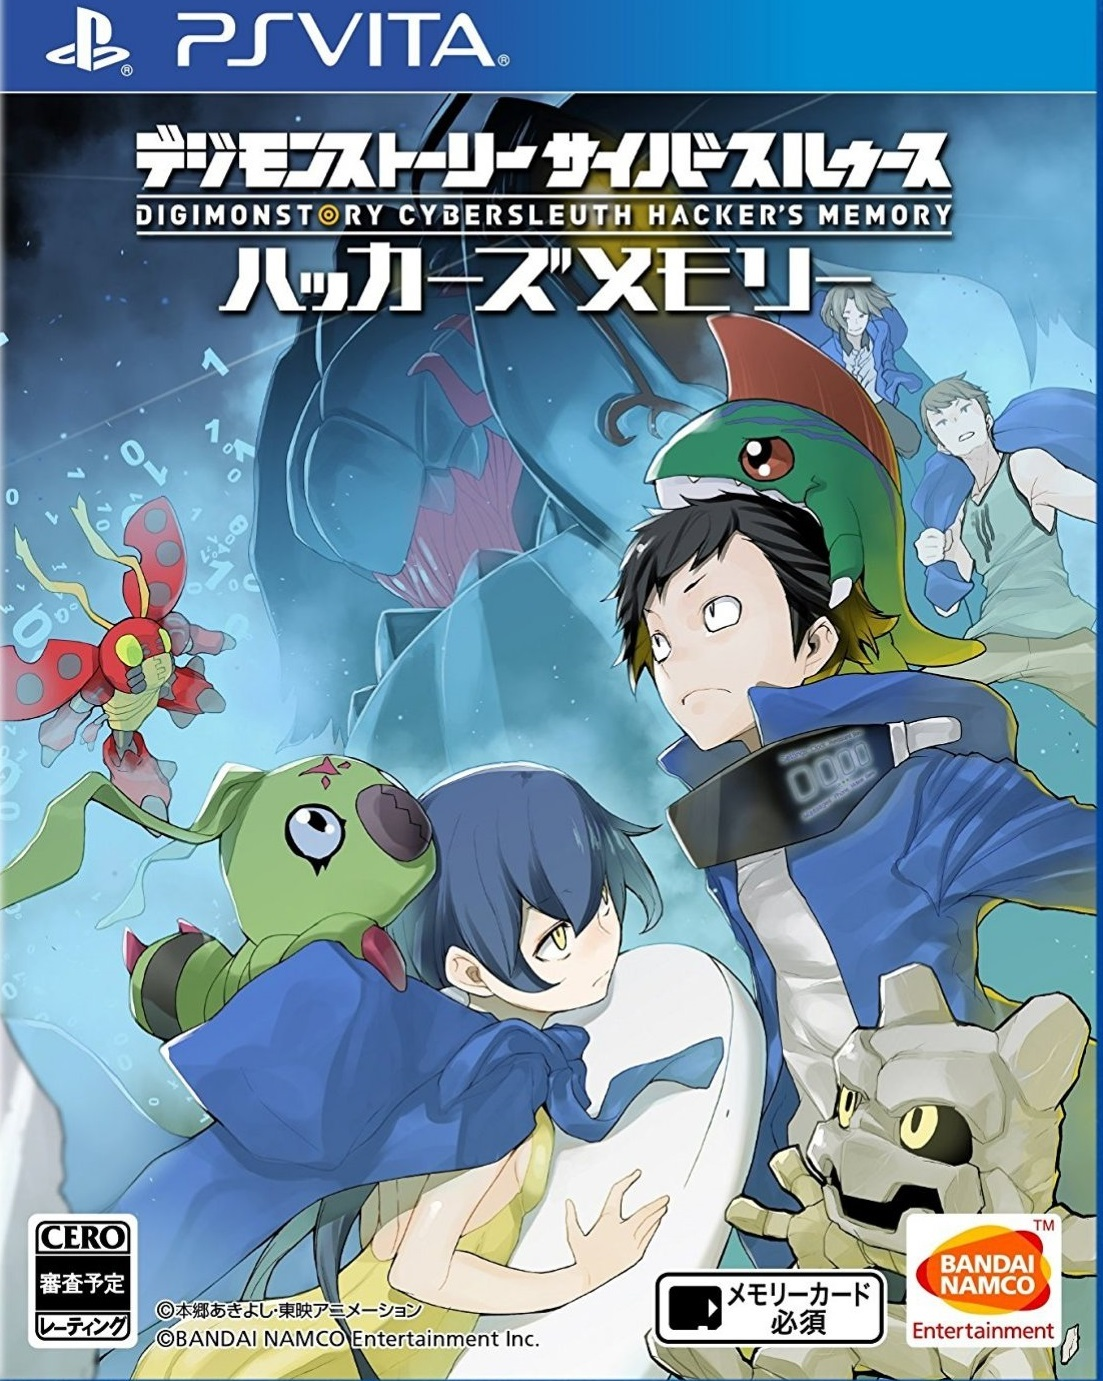 digimon-story-cyber-sleuth-hackers-memory-chinese-subs-534215.1.jpg